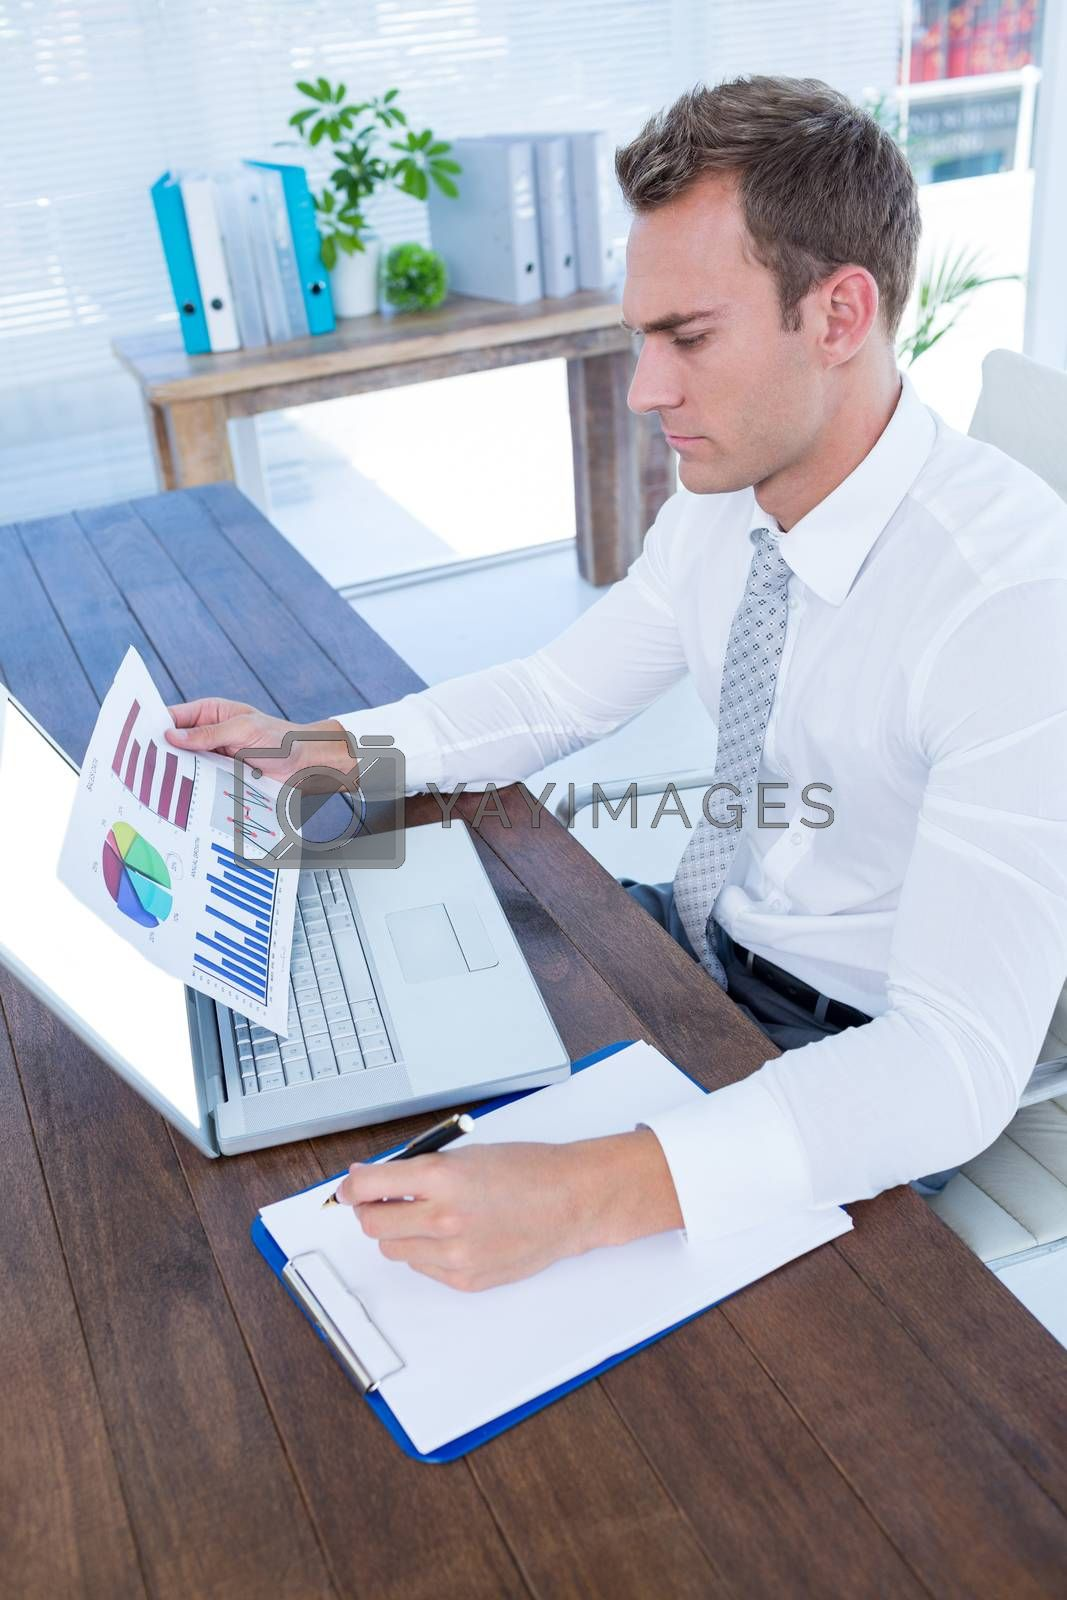 Royalty free image of Attentive businessman working with flow charts by Wavebreakmedia